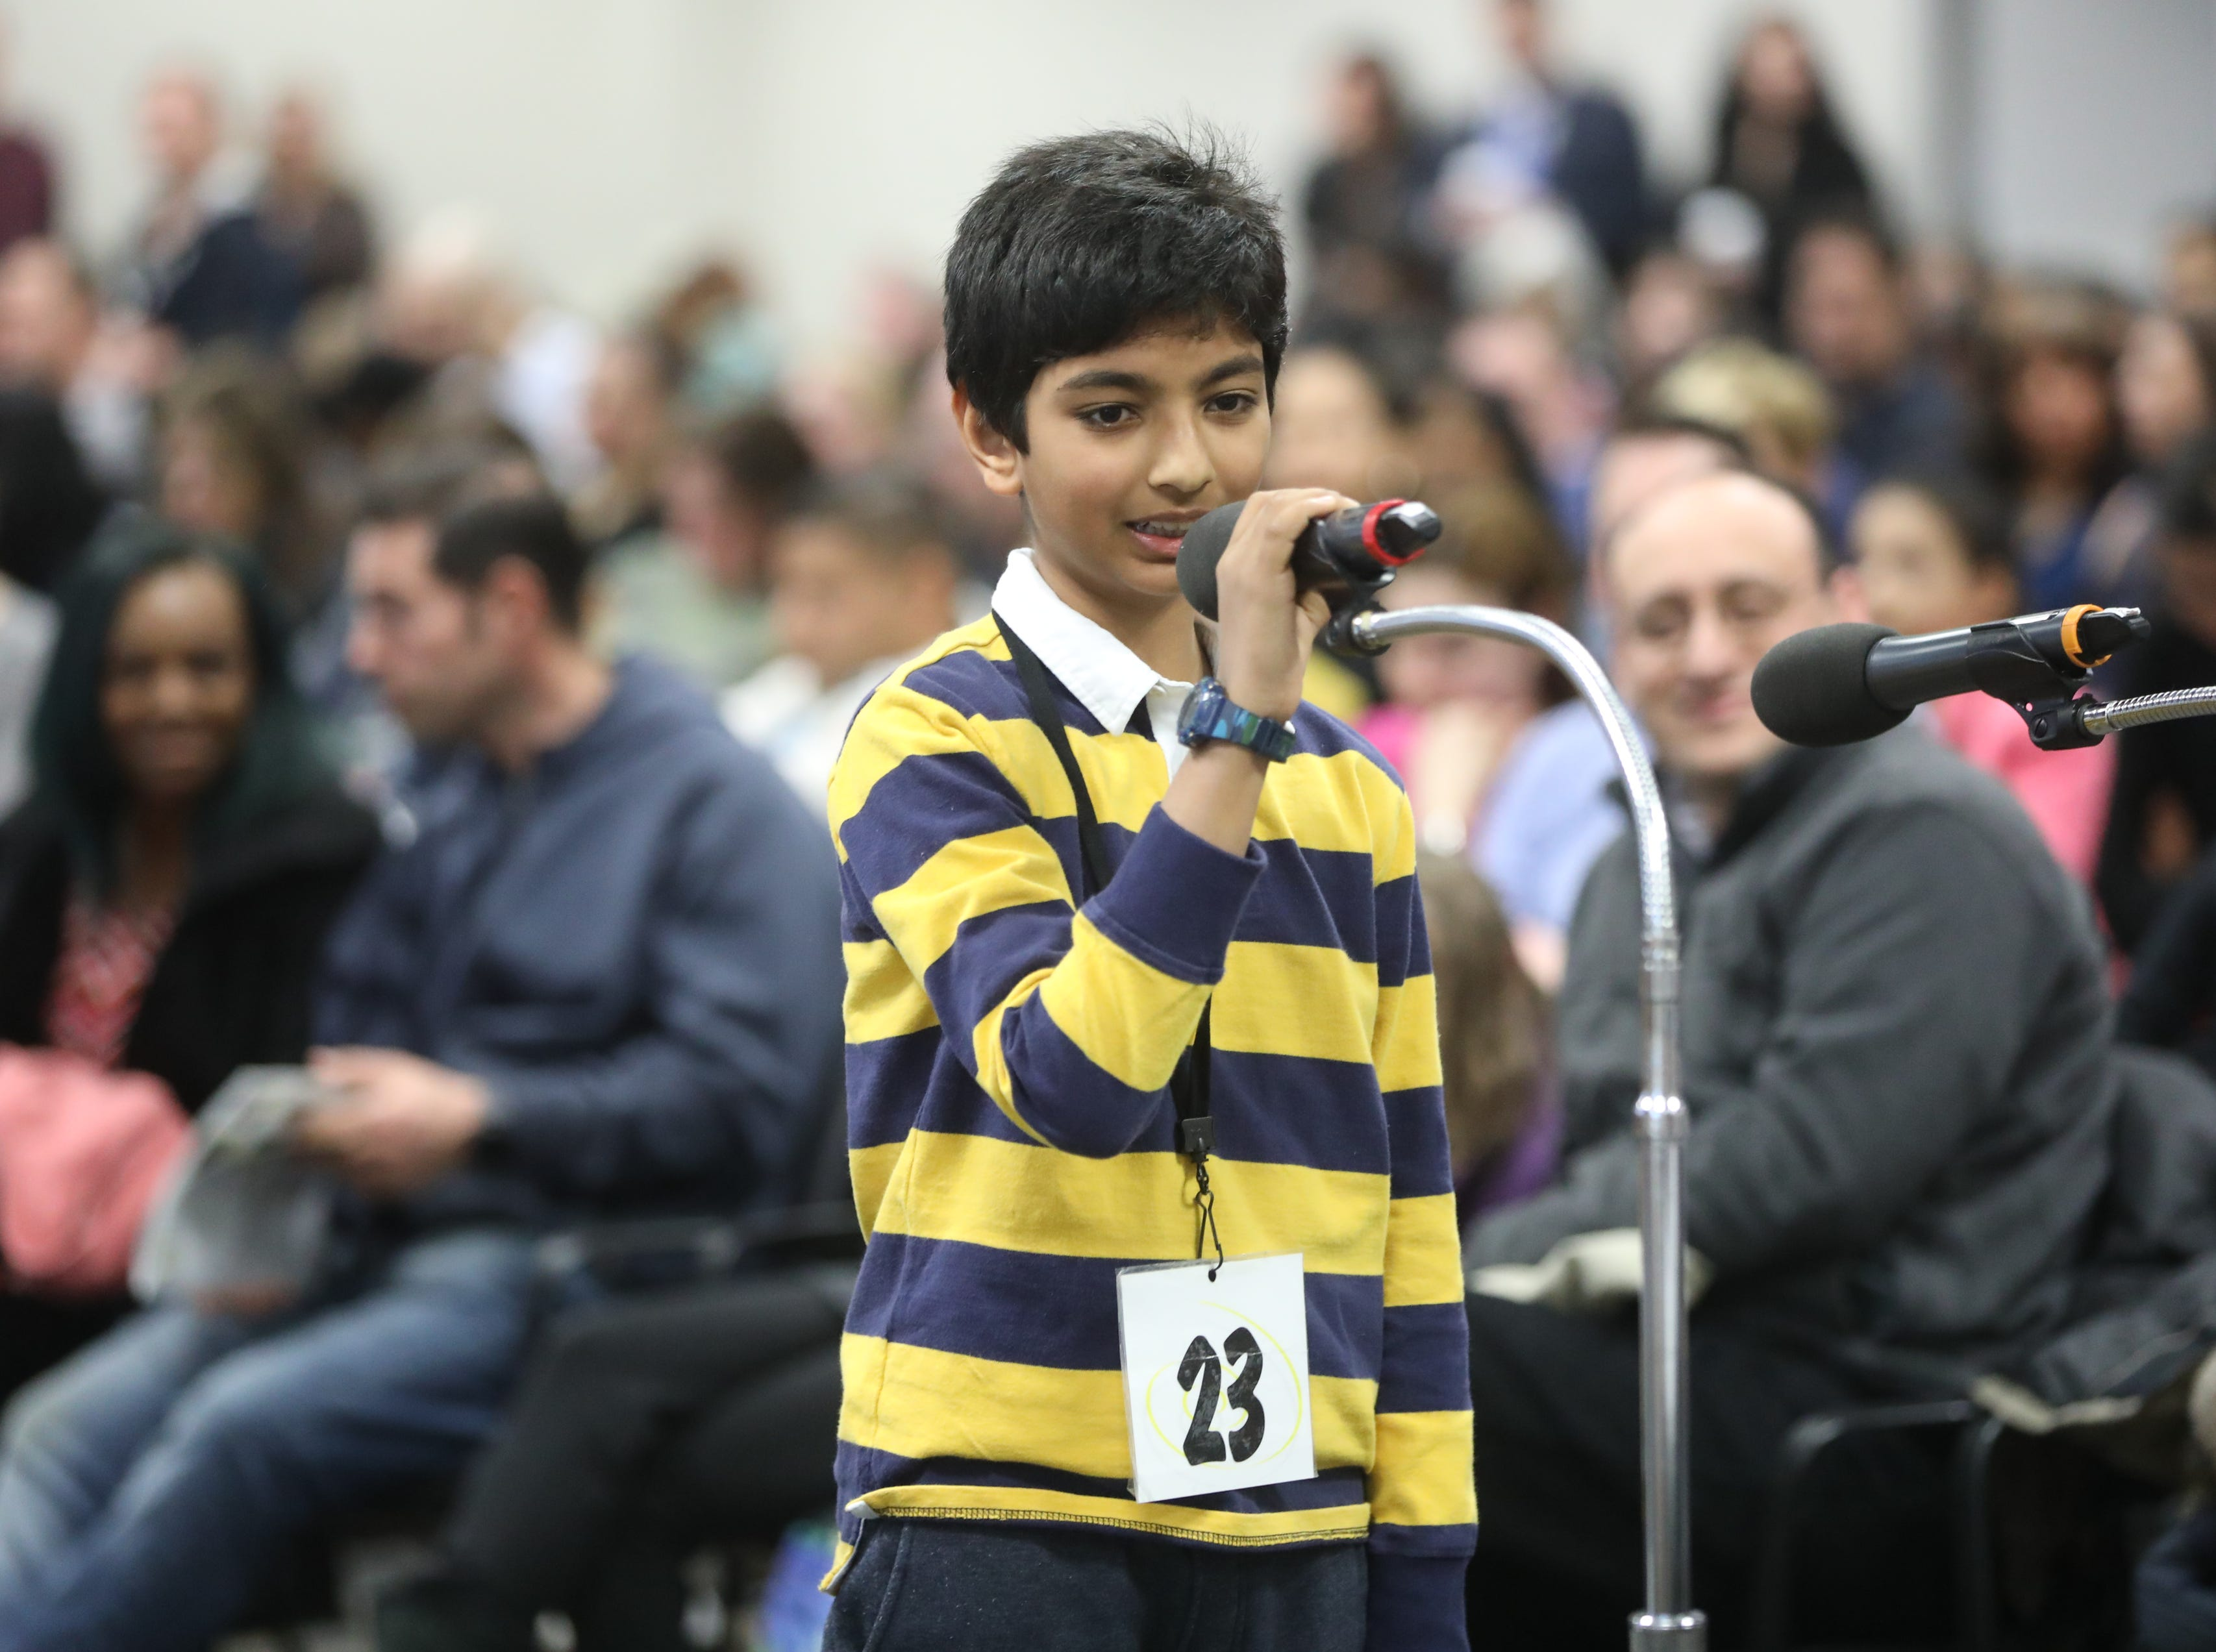 Aarush Goyal, of Edgewater, competes in the first round of the 2019 North Jersey Spelling Bee, in Paramus. Thursday, March 14, 2019